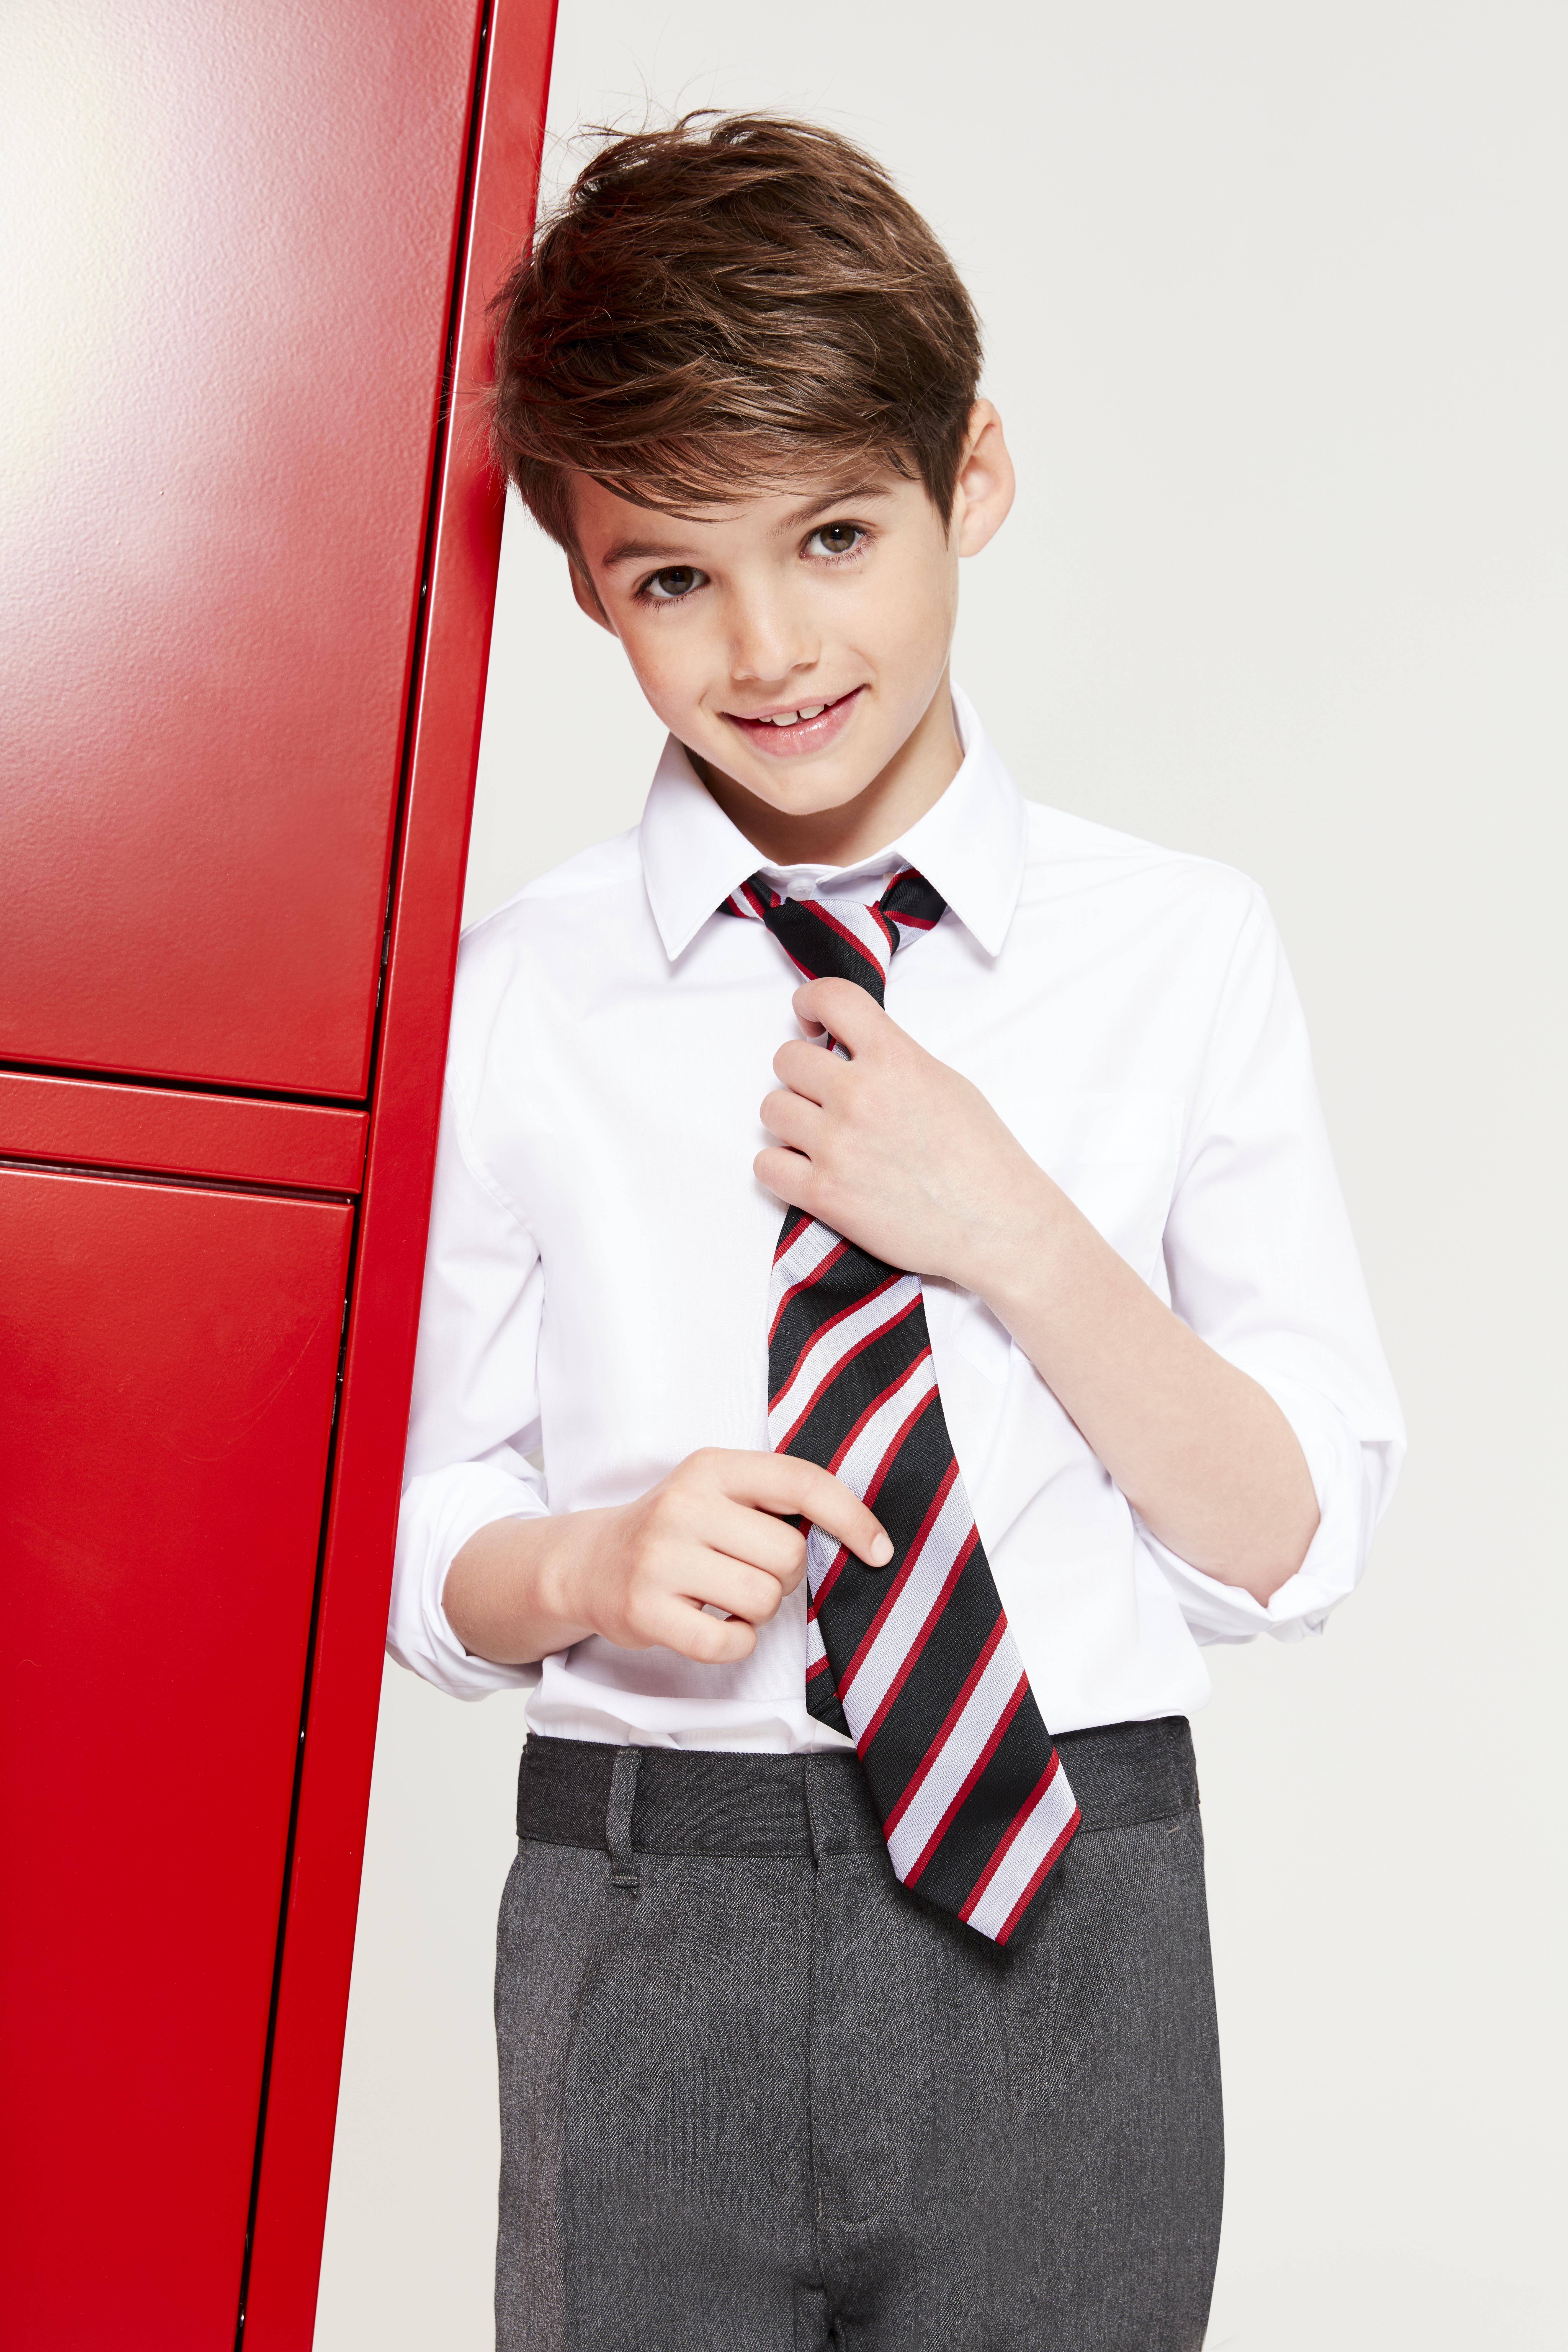 F&F BOYS 2PK LONG SLEEVE EASYCARE SHIRTS WHITE £3.50, DK GREY PLEAT FRONT TROUSERS £4